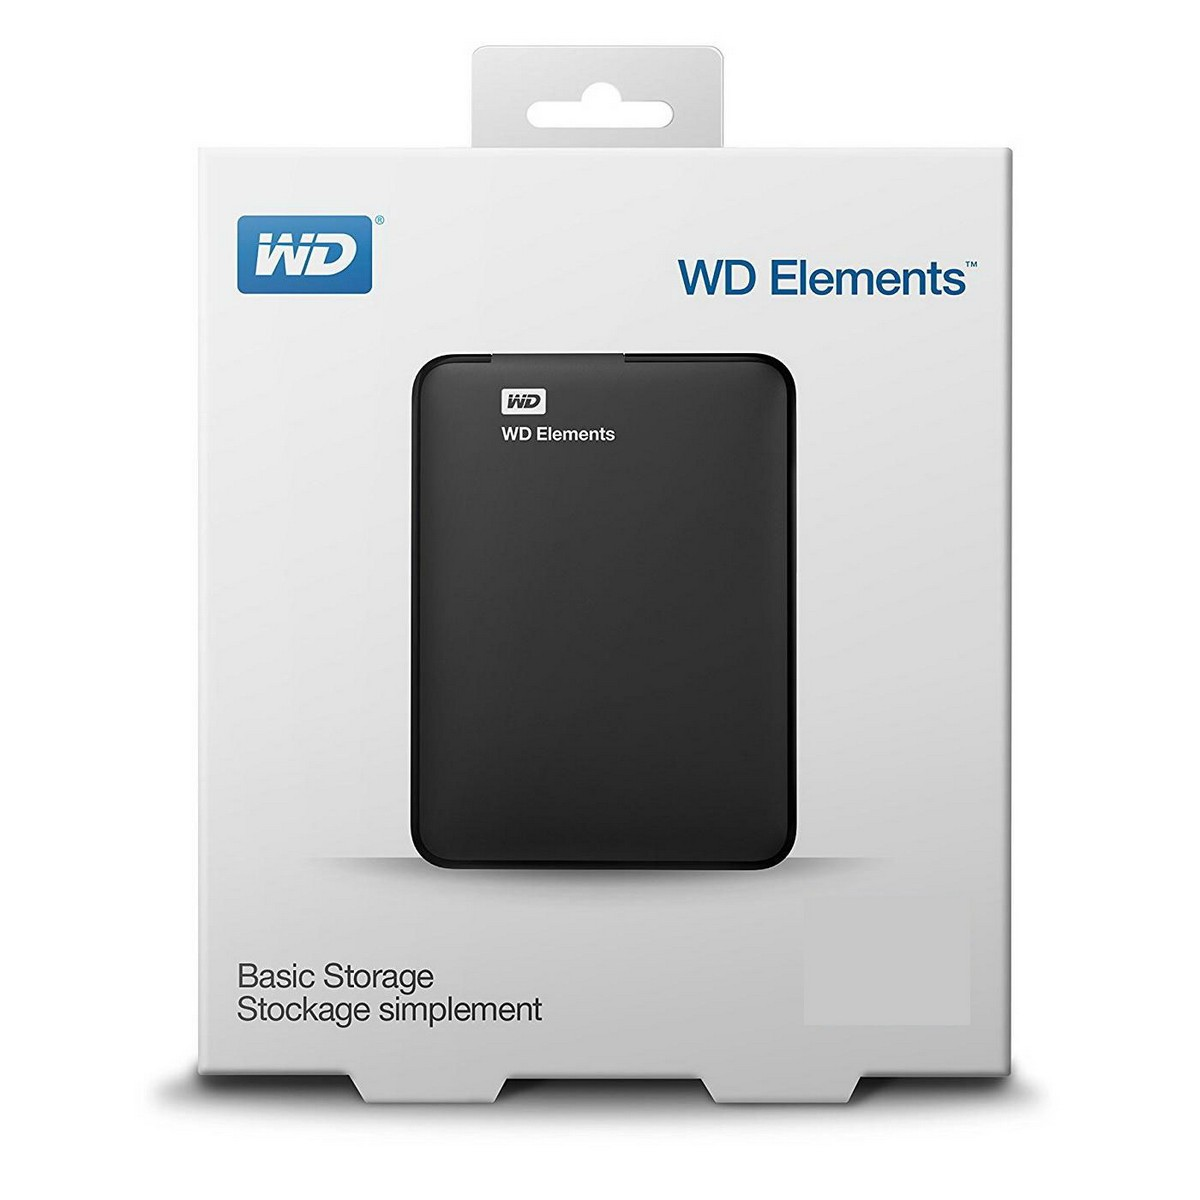 USB 3.0 WD ELEMENT SATA External 2.5 inch HDD Hard Drive Enclosure Disk Case Box For PC LAPTOP HDD SSD CASE